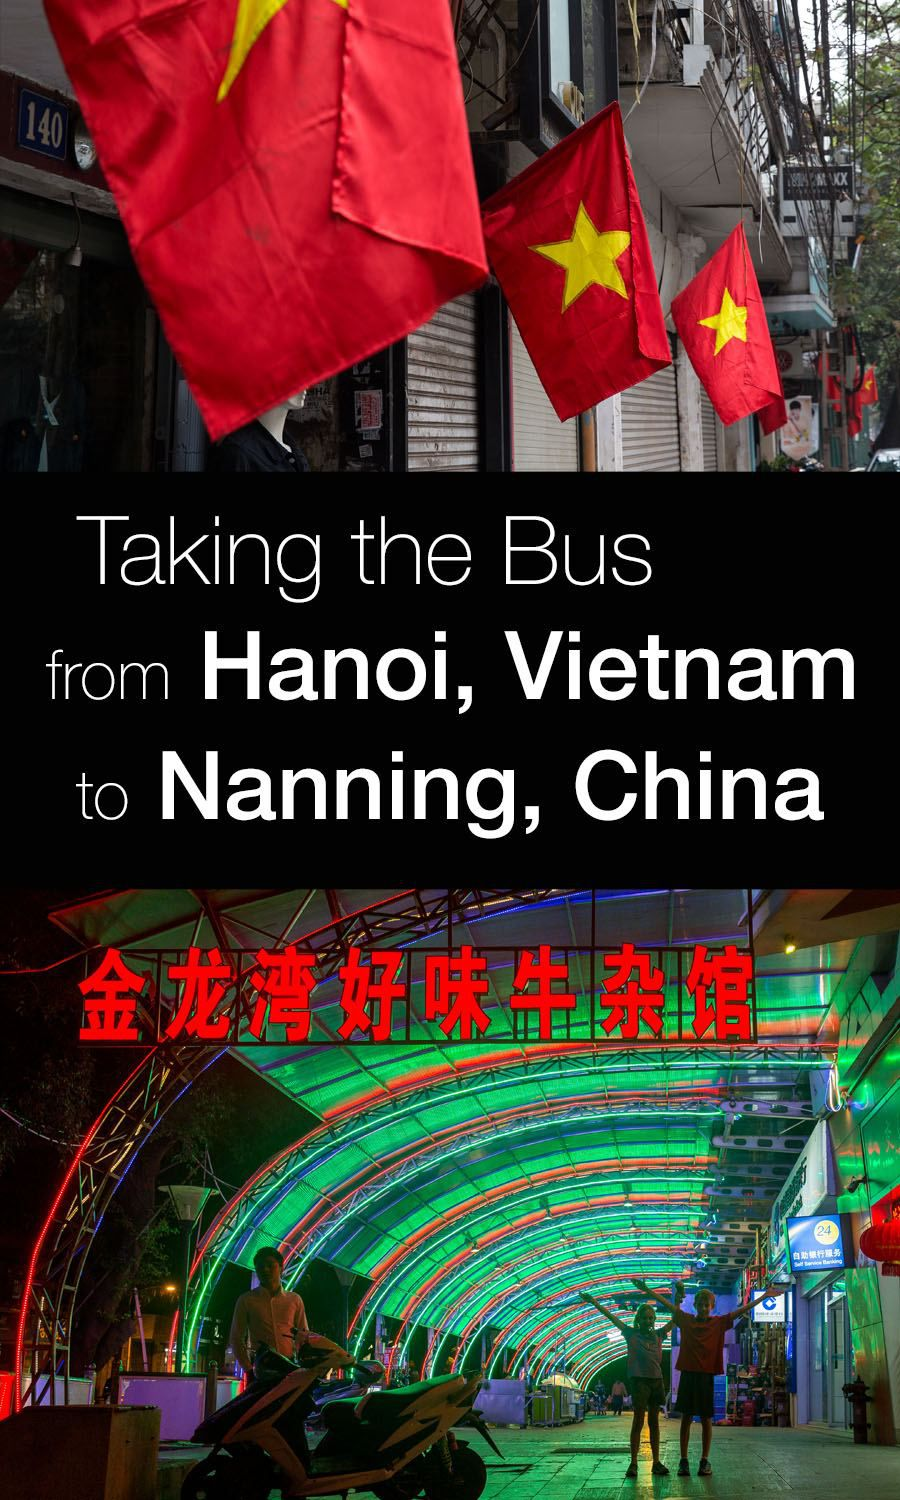 Taking the bus from Hanoi to Nanning